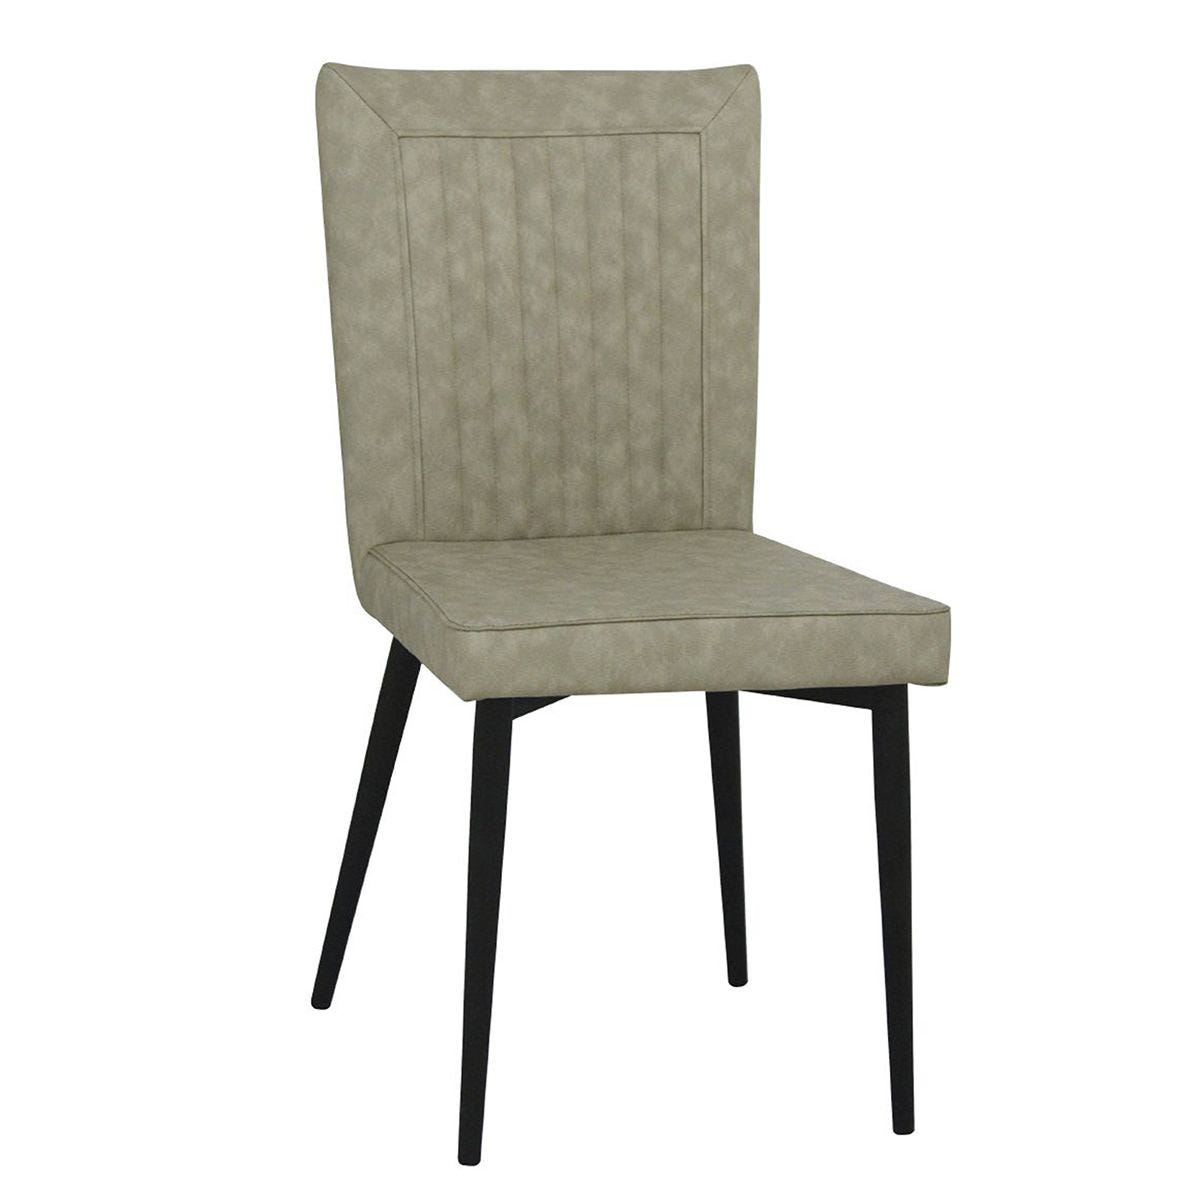 Set Of 4 Hoskin Faux Leather Chairs - Taupe/Black